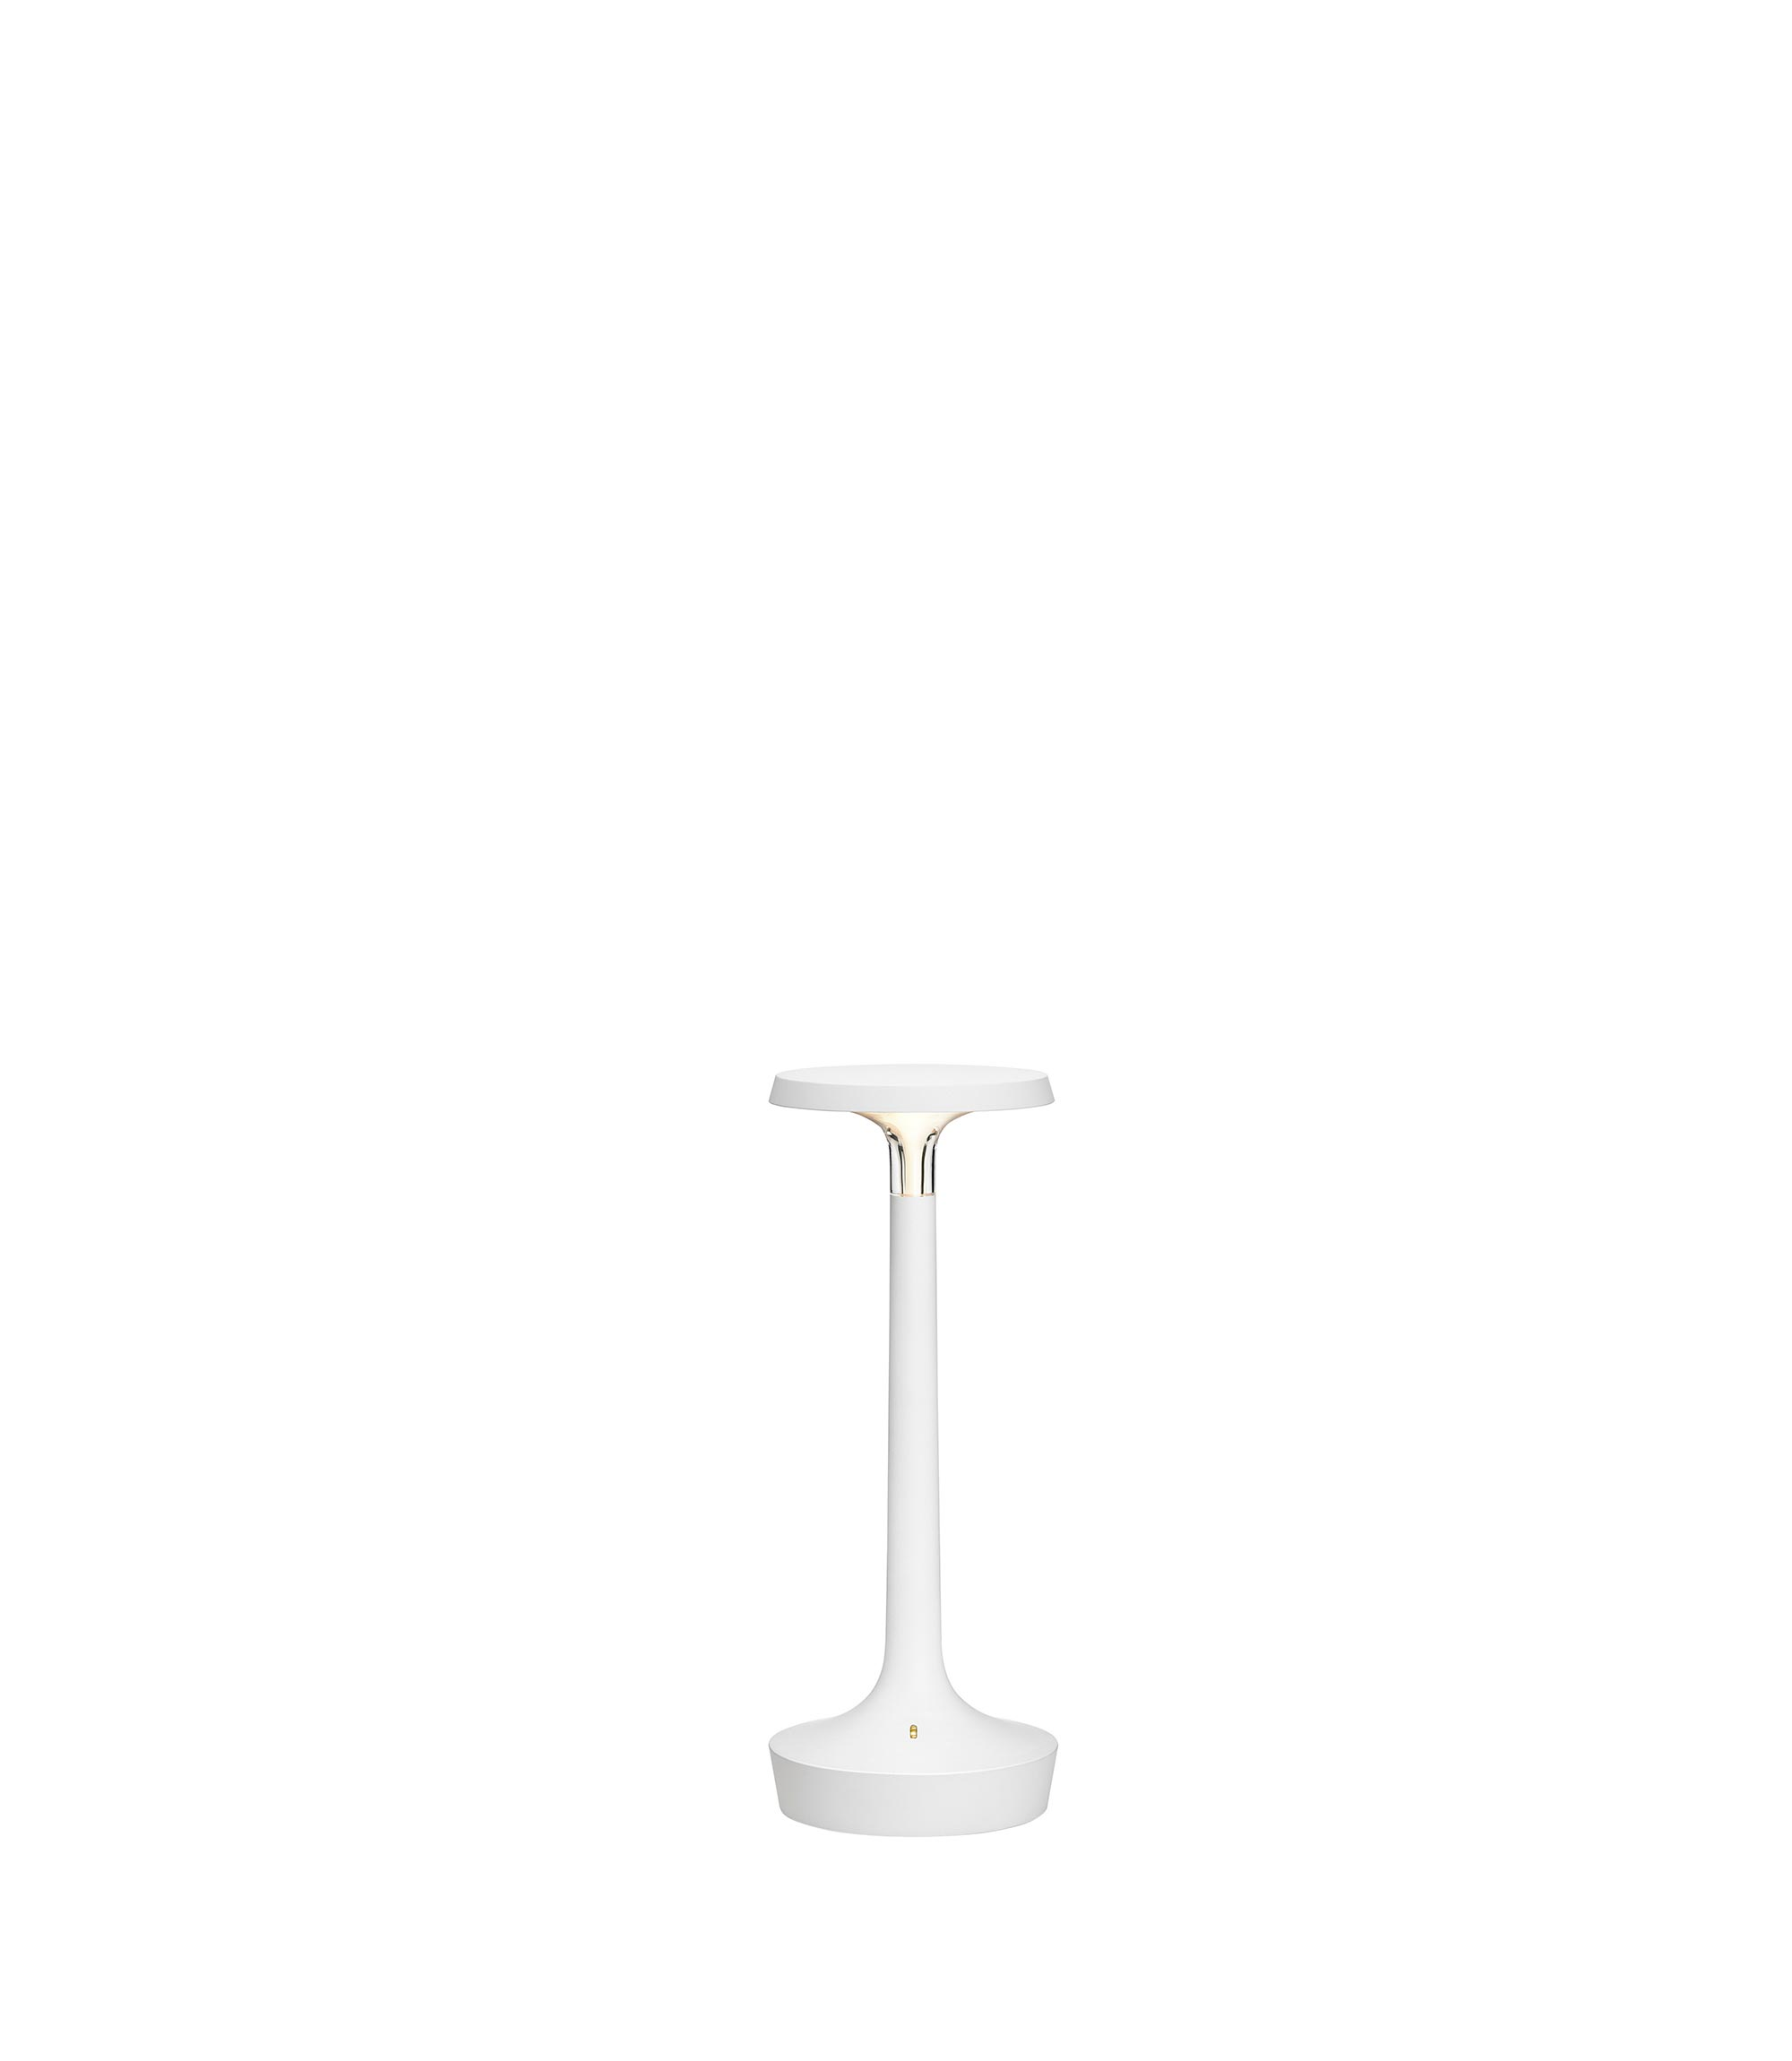 Bon jour unplugged table starck flos F1037009 product still life big 1